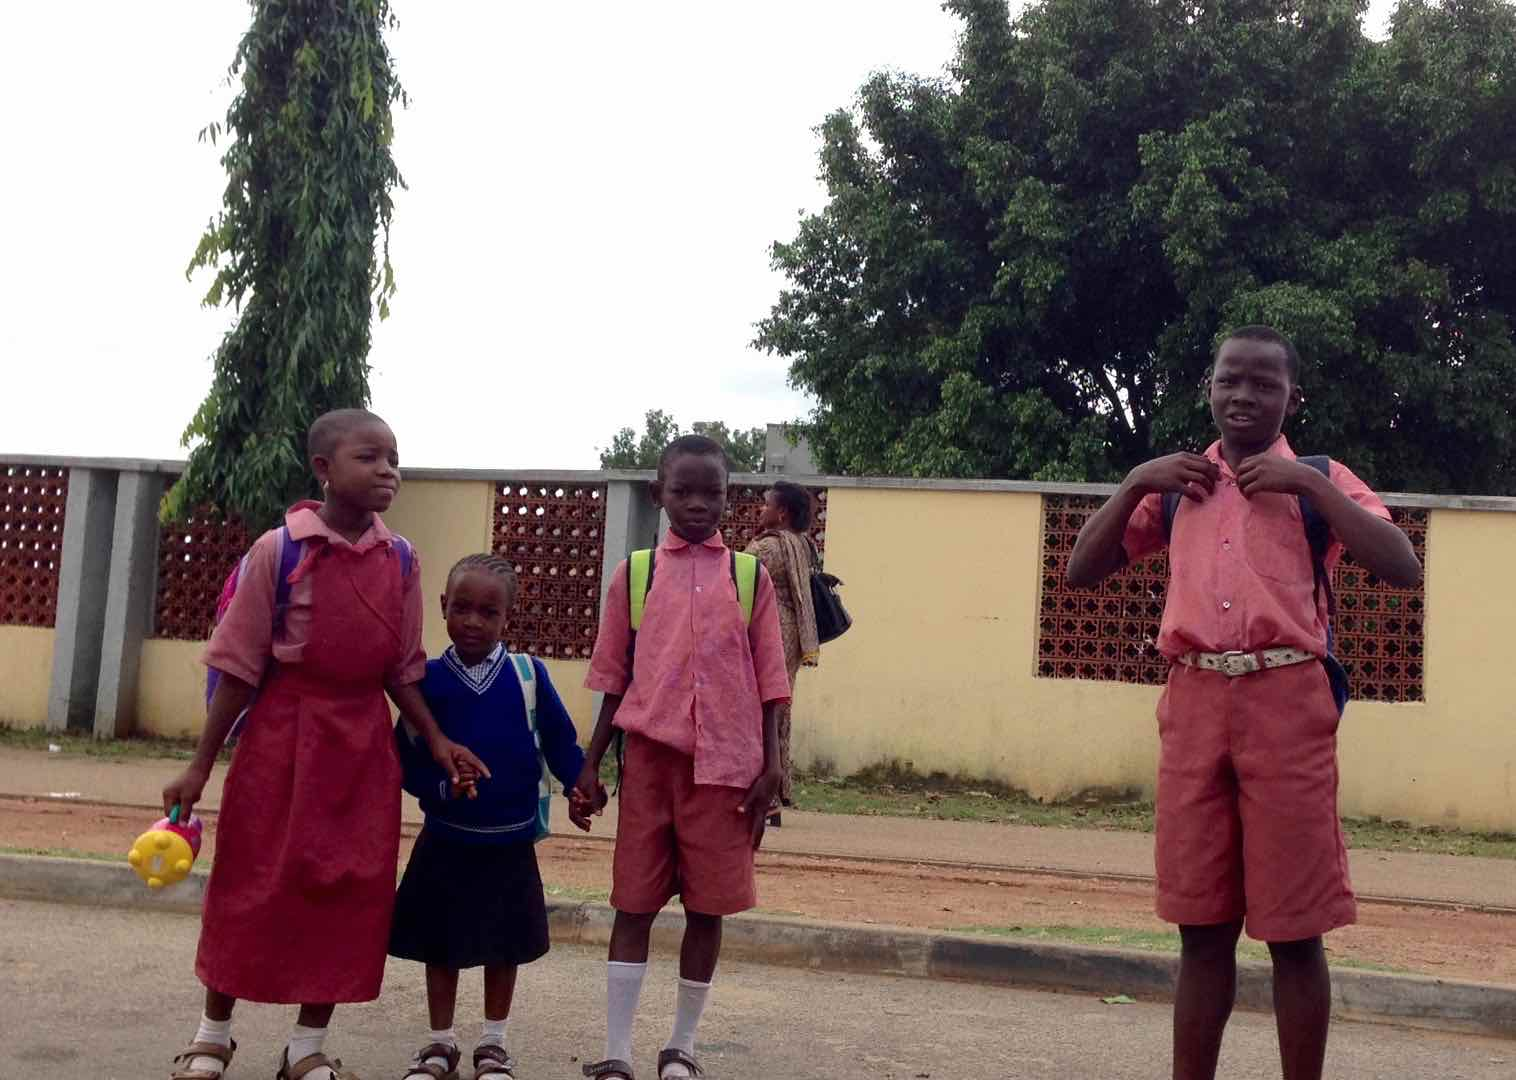 School children in Garki, FCT, Abuja, Nigeria. #JujuFilms